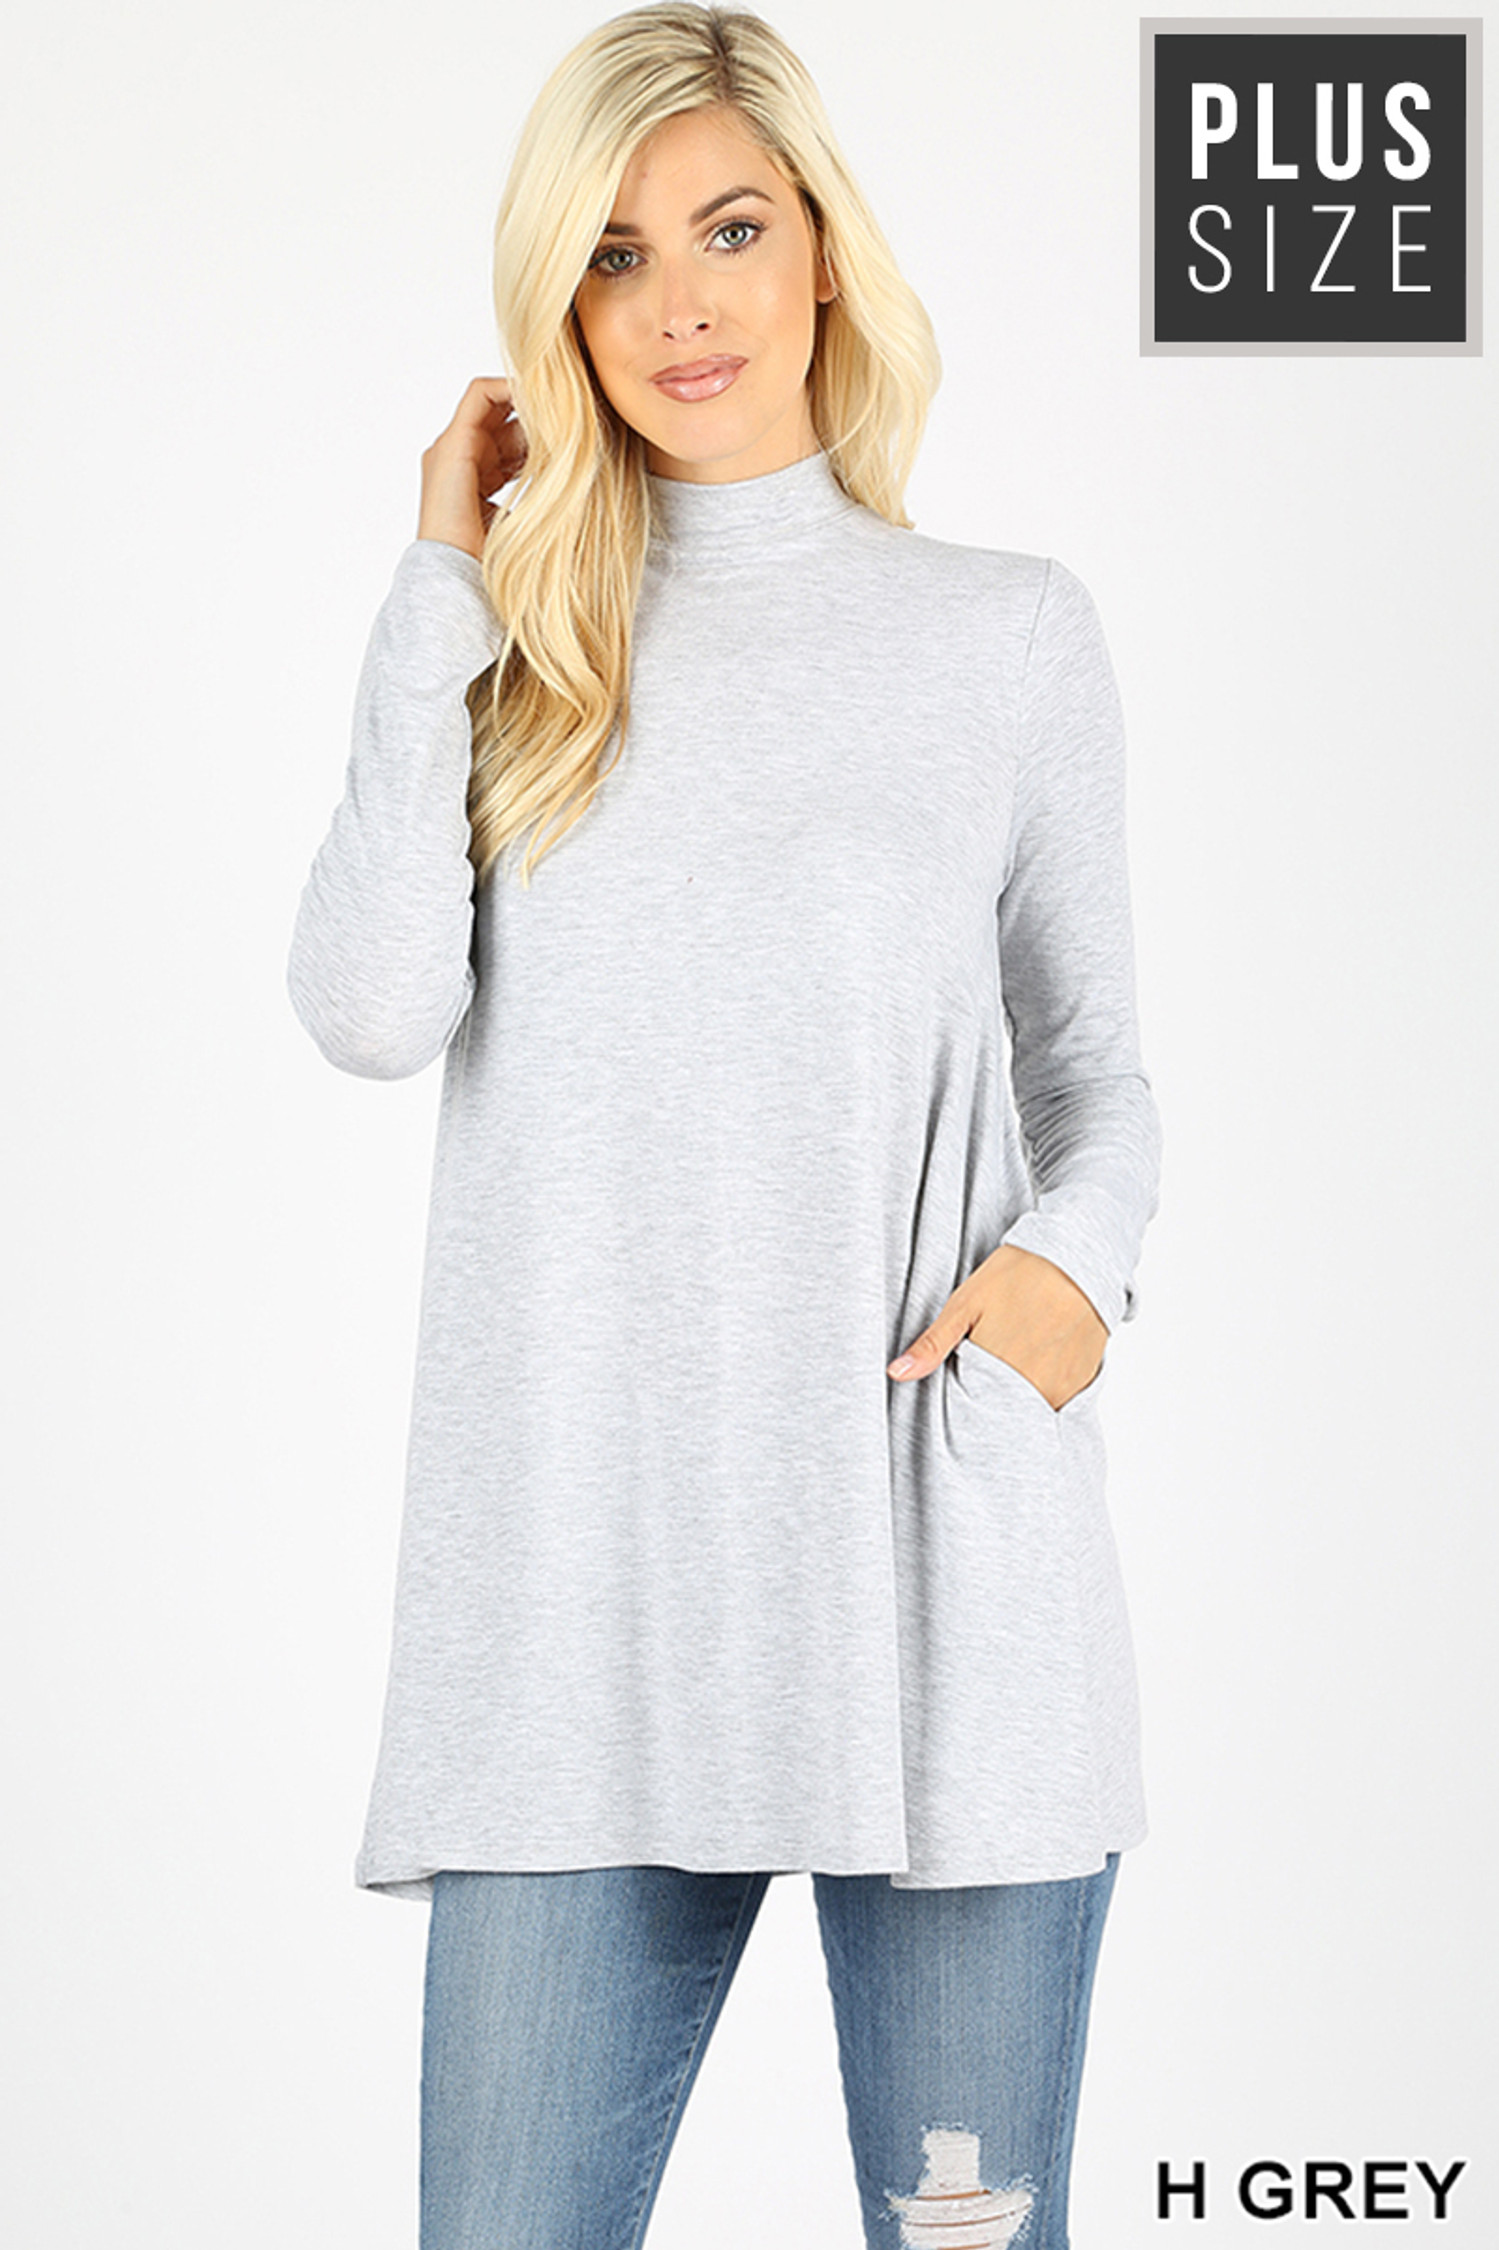 Front image of Heather Grey Long Sleeve Mock Neck Plus Size Top